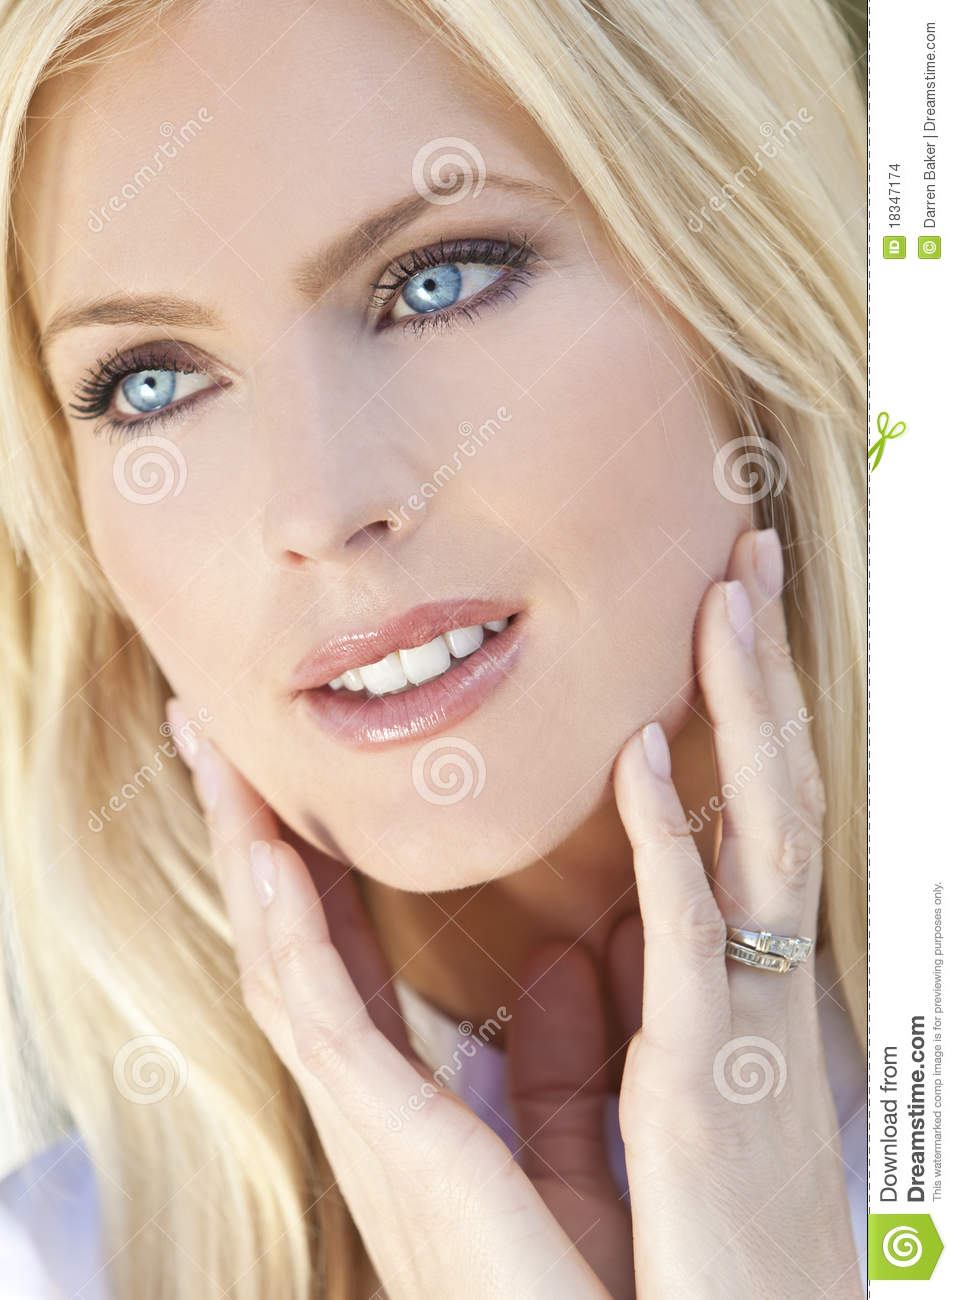 More similar stock images of ` Beautiful Young Blond Woman With Blue ...